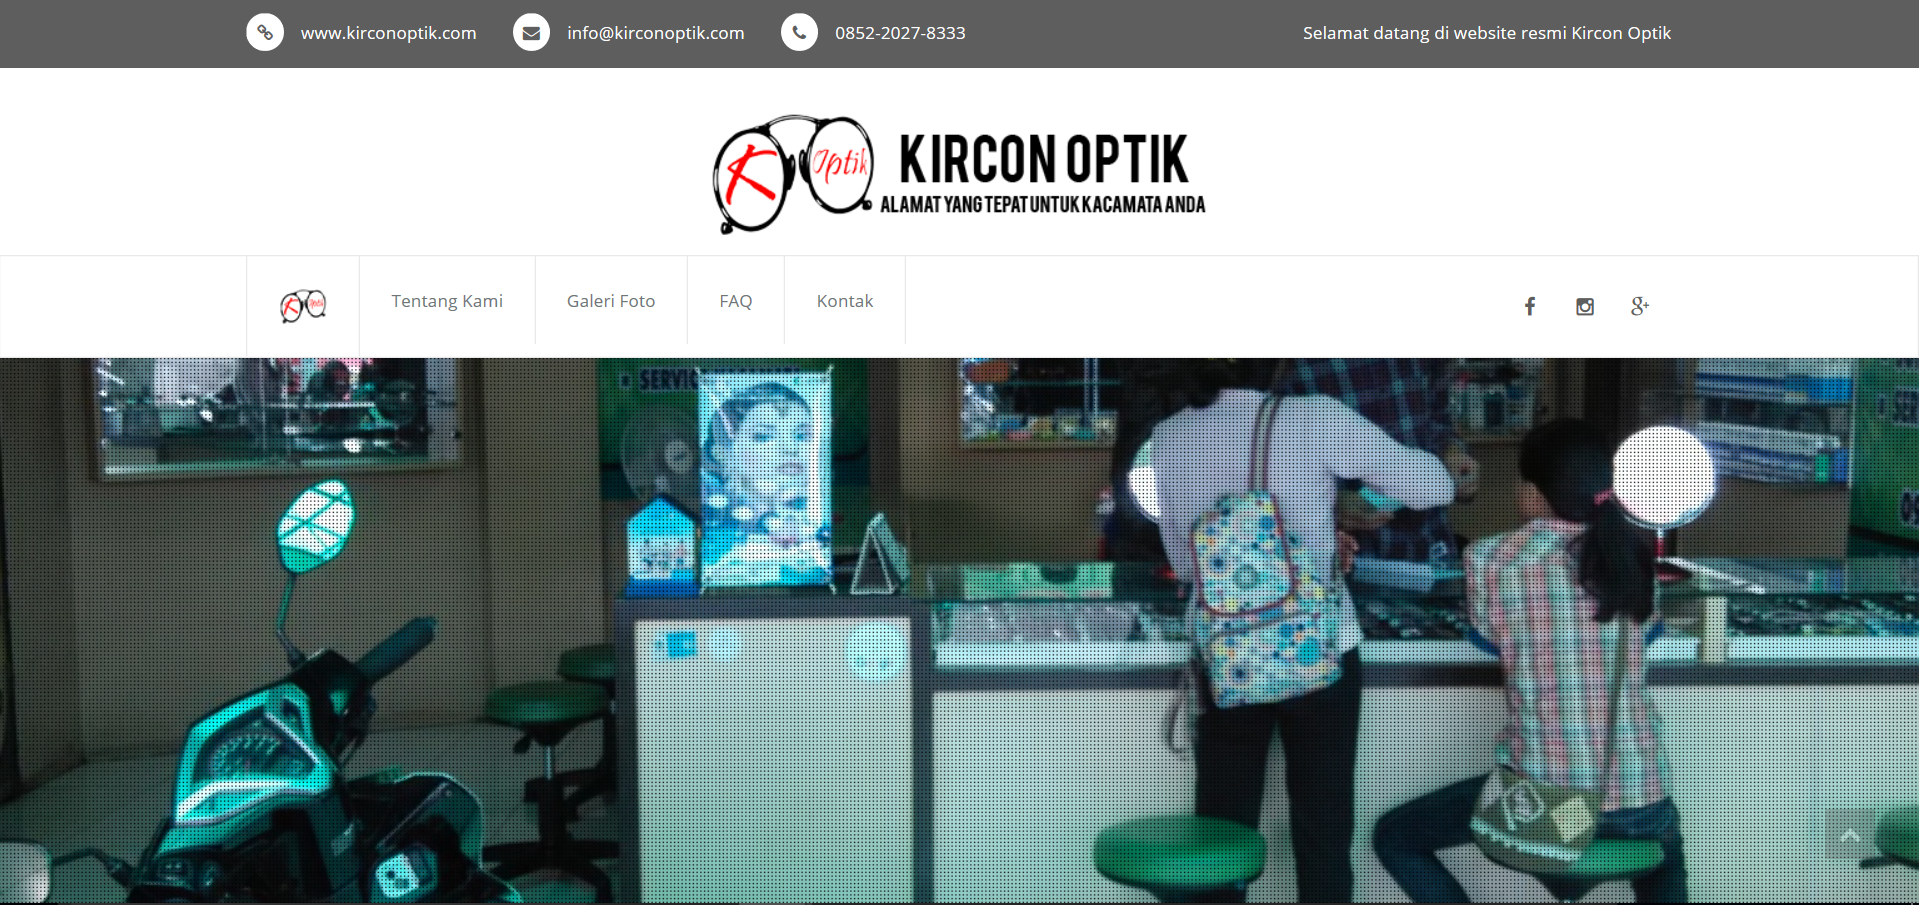 Kircon Optik Official Website